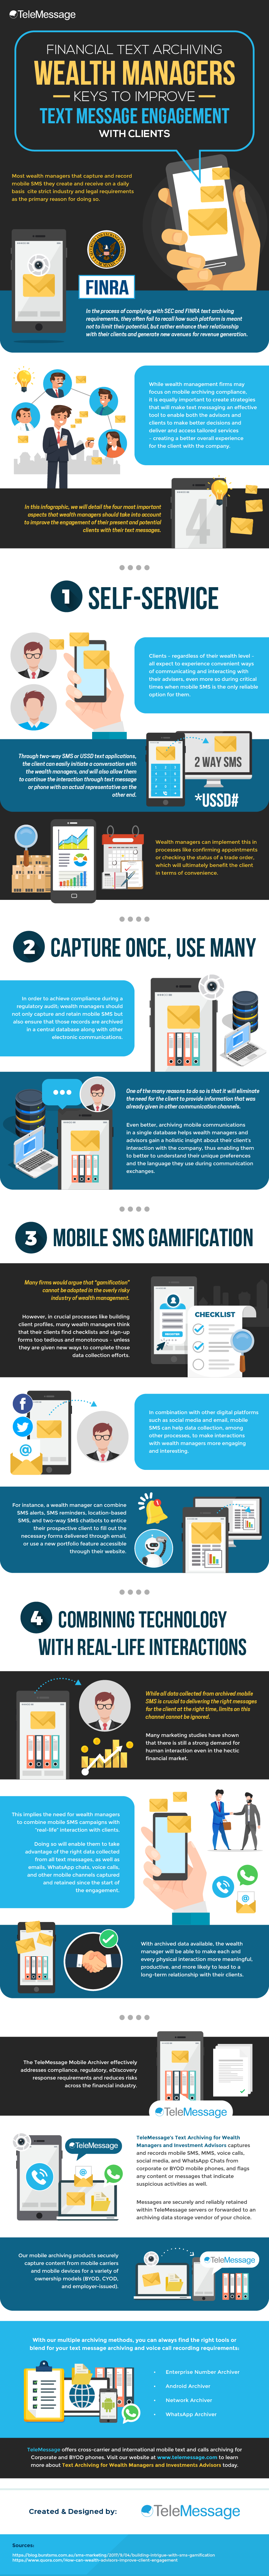 Finance / Financial Text Archiving – Wealth Managers Keys to Improve Text Message Engagement with Clients #infographic